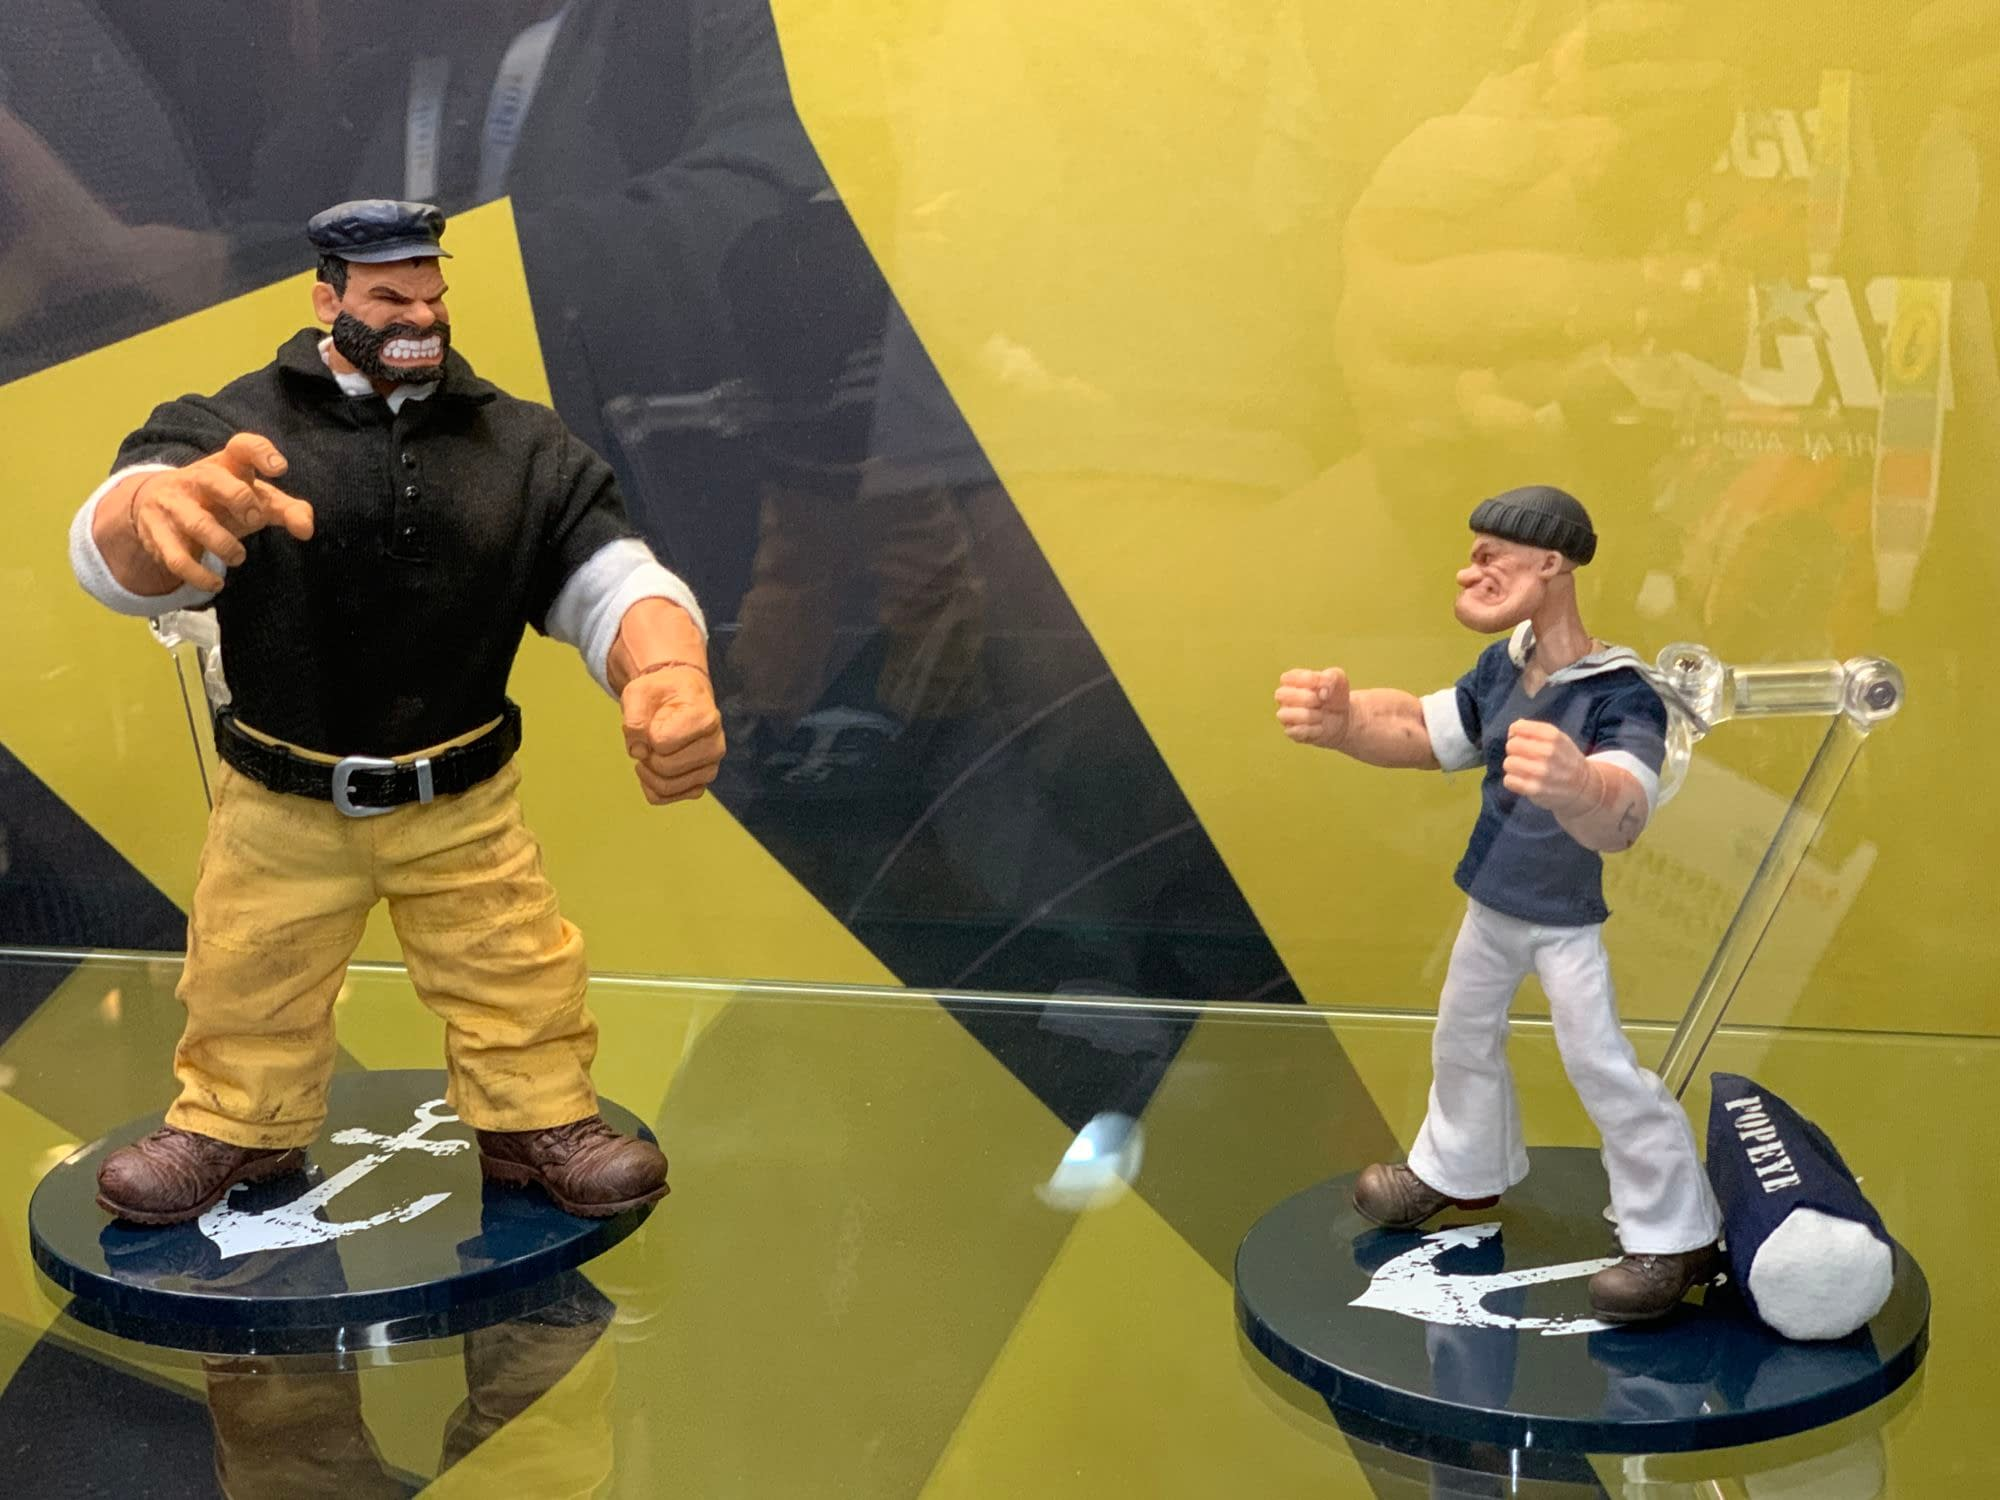 New York Toy Fair: 76 Photos From the Mezco Toyz Booth